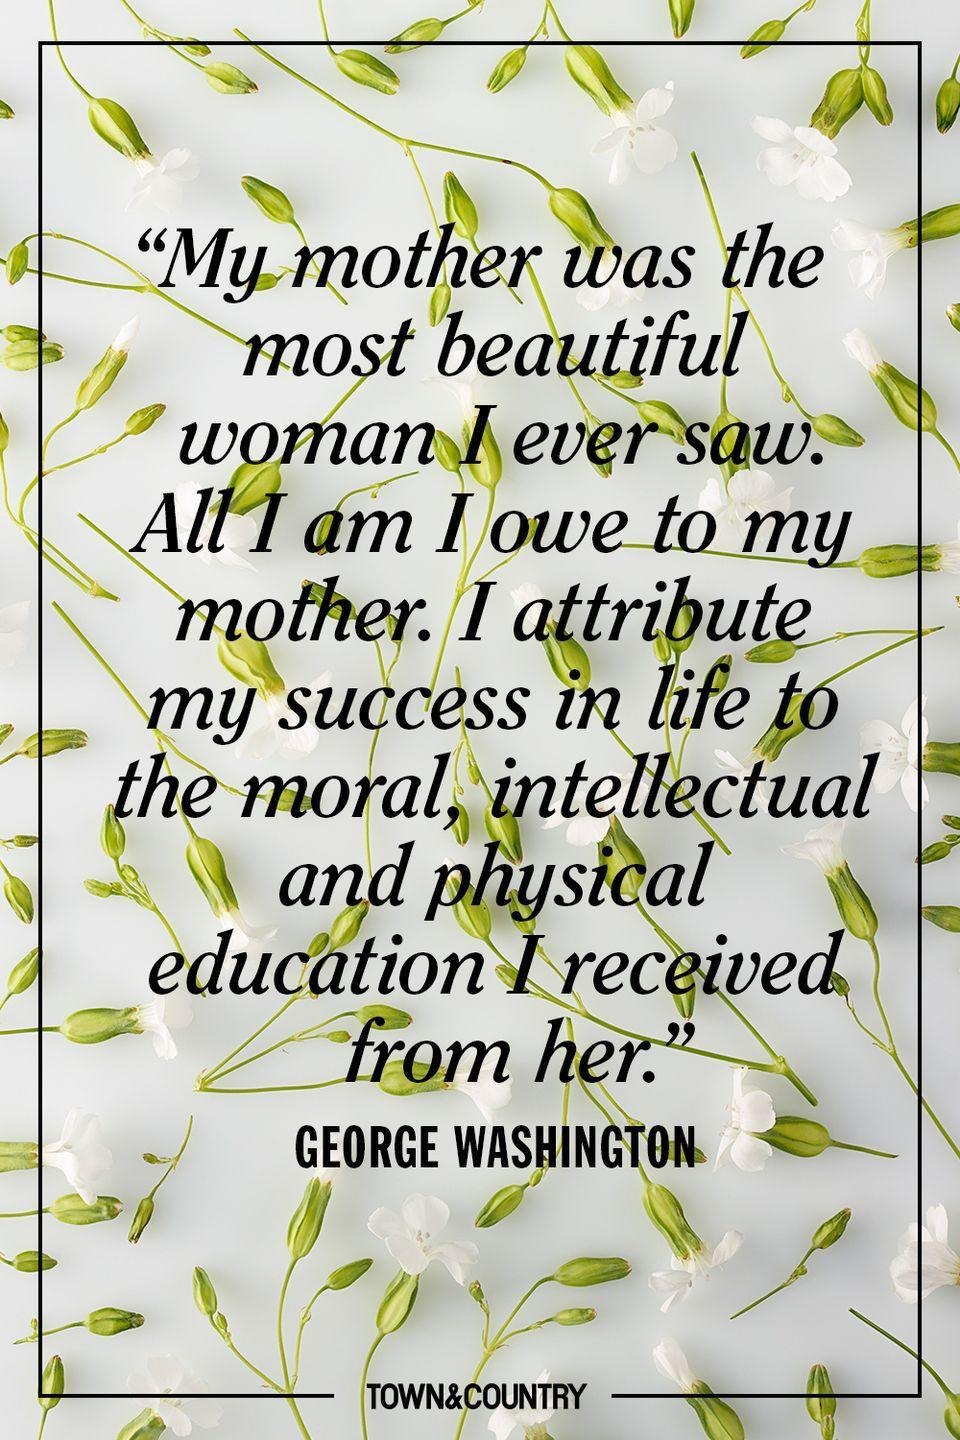 """<p>""""My mother was the most beautiful woman I ever saw. All I am I owe to my mother. I attribute my success in life to the moral, intellectual and physical education I received from her."""" </p><p>- George Washington</p>"""